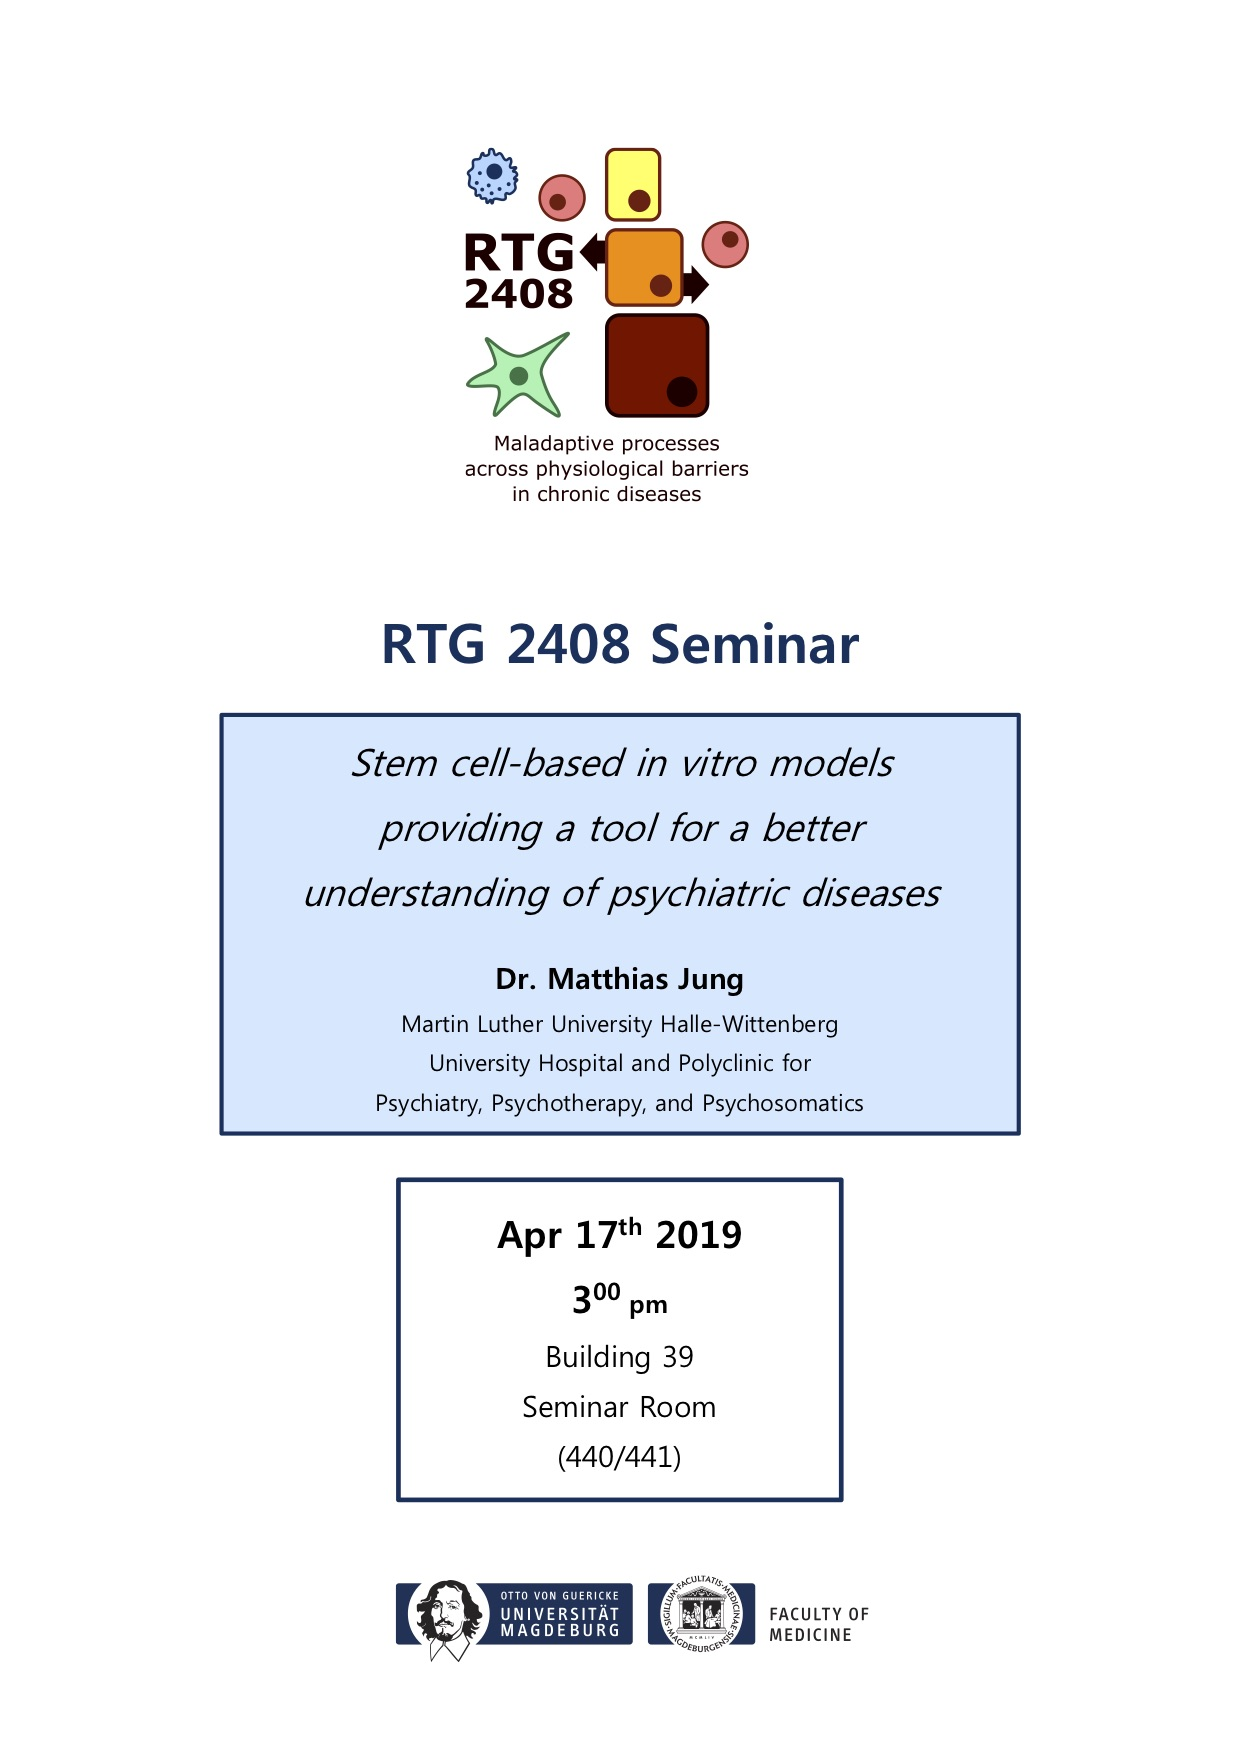 RTG 2408 Lecture: Stem cell-based in vitro models providing a tool for a better understanding of psychiatric diseases @ Building 39, Seminar Room 440/441